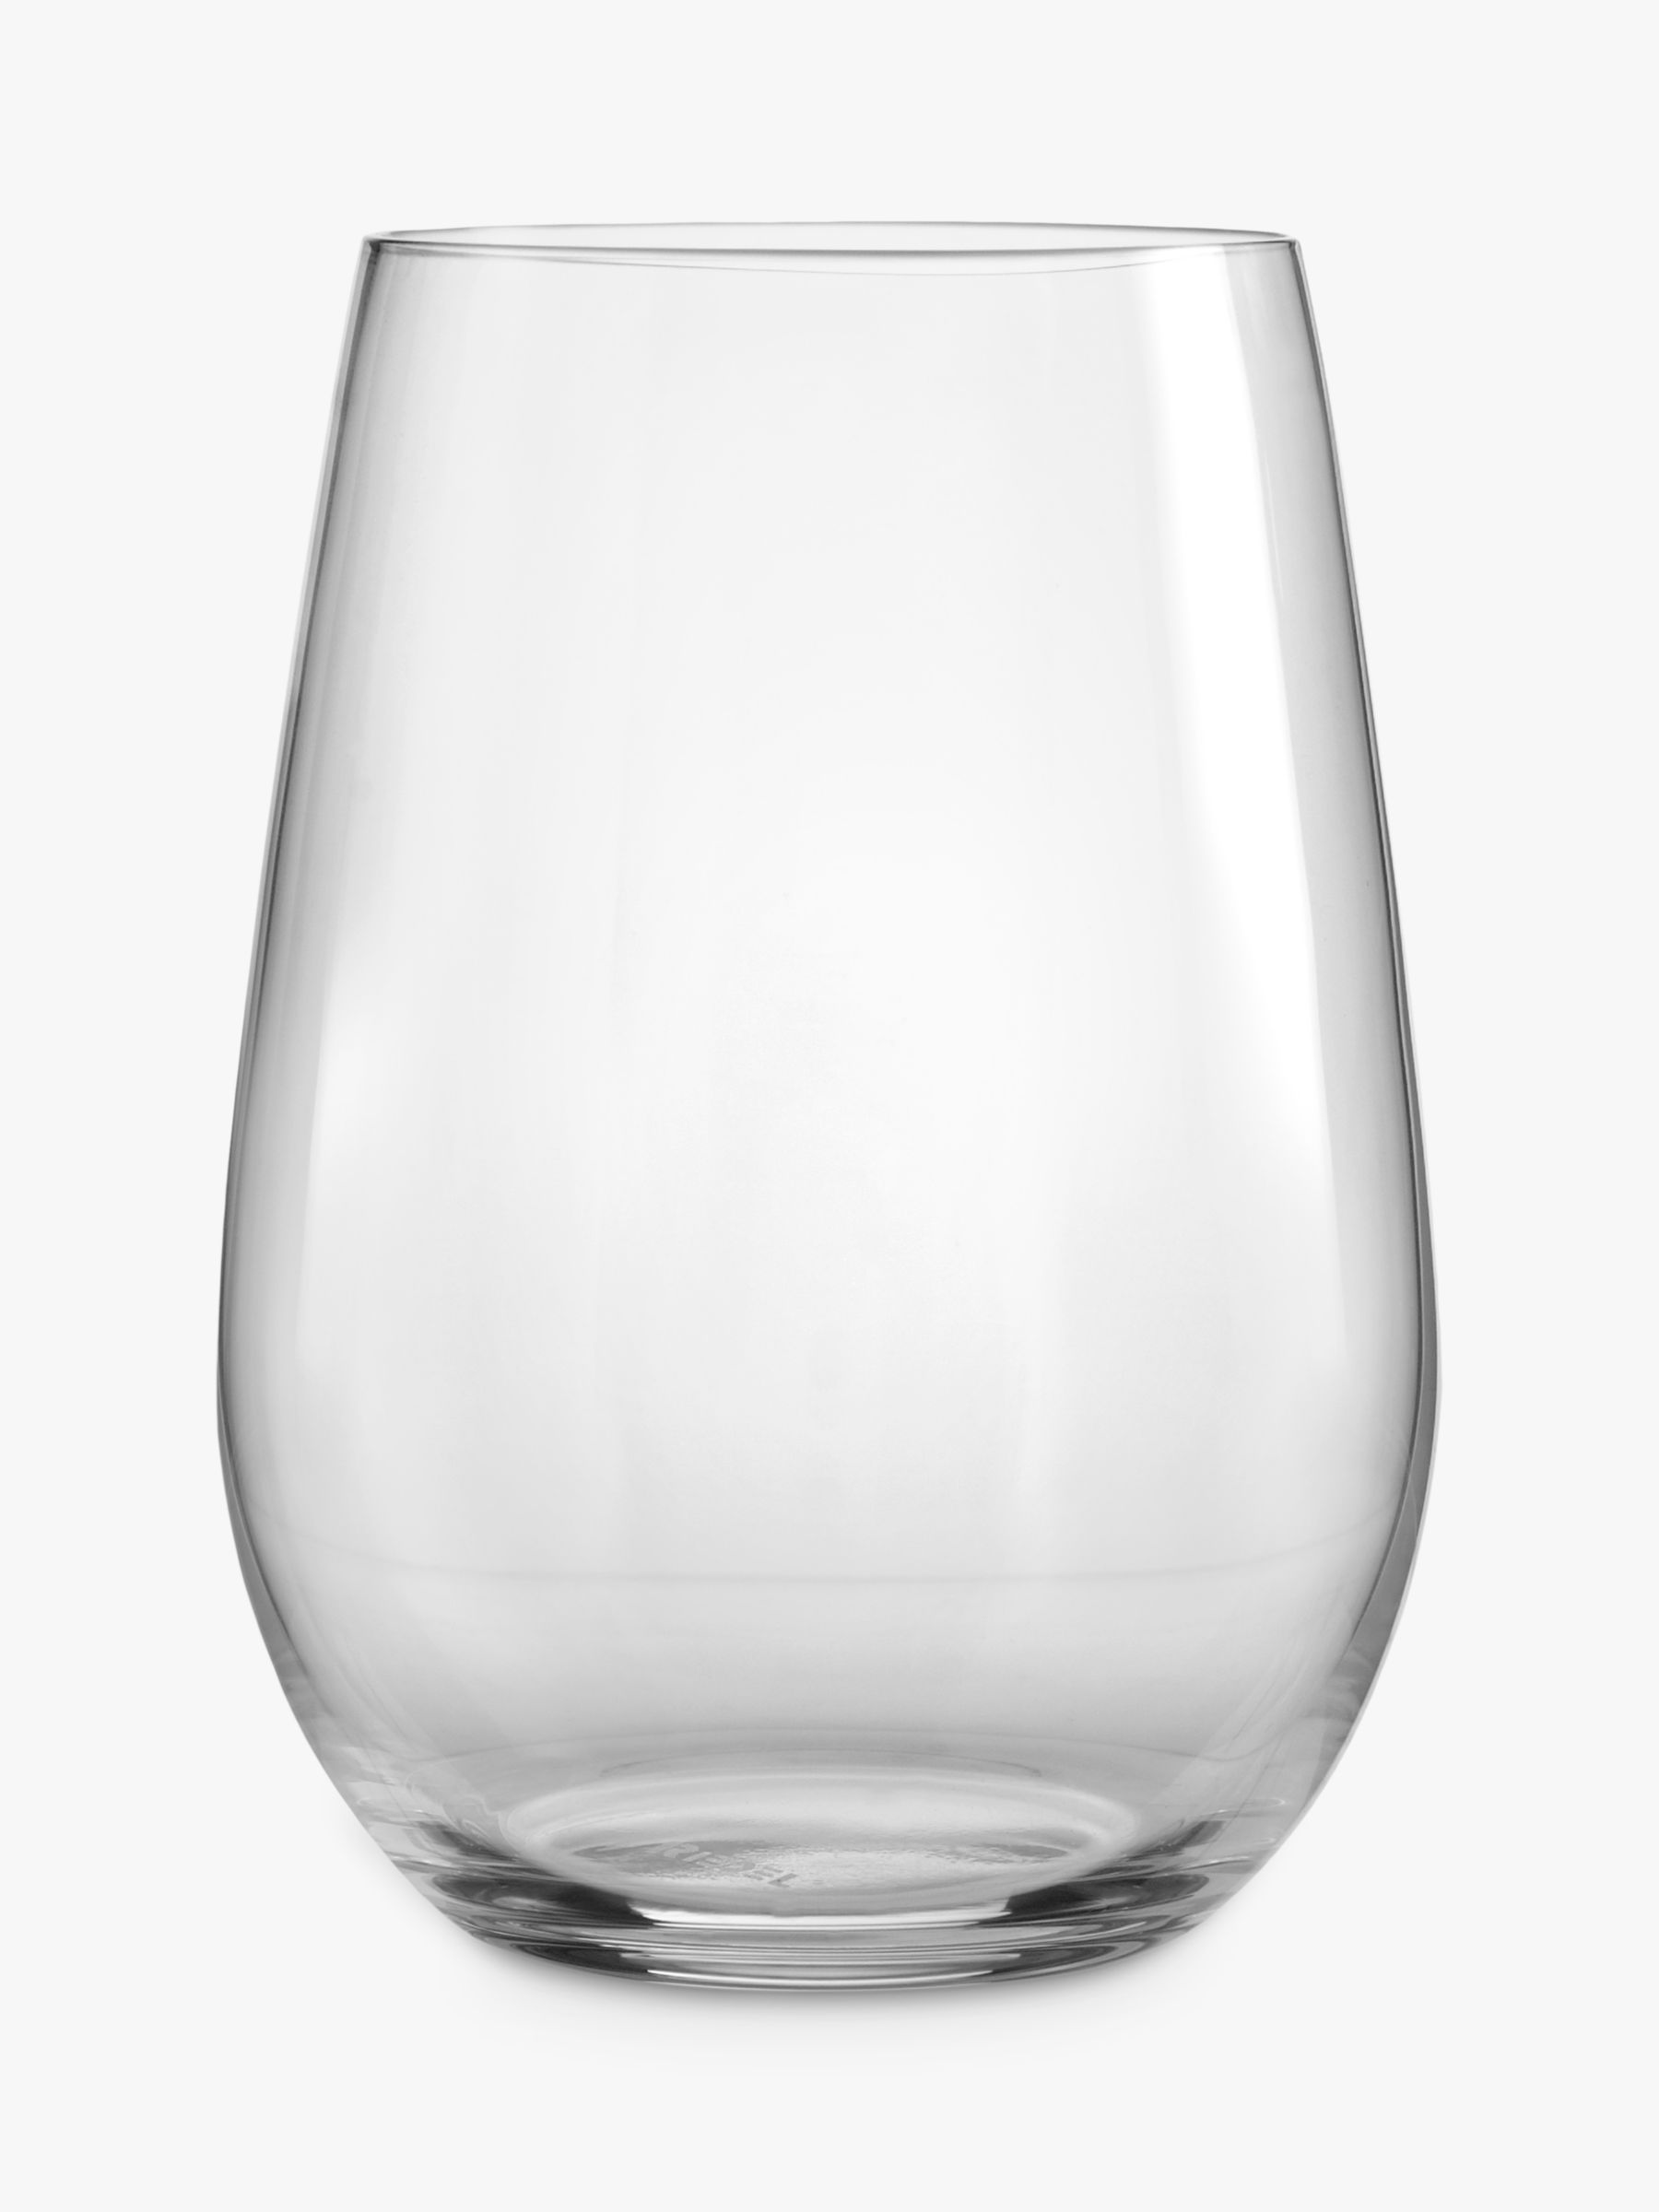 Riedel Riedel 'O' Riesling/ Sauvignon Stemless Glass, Set of 2